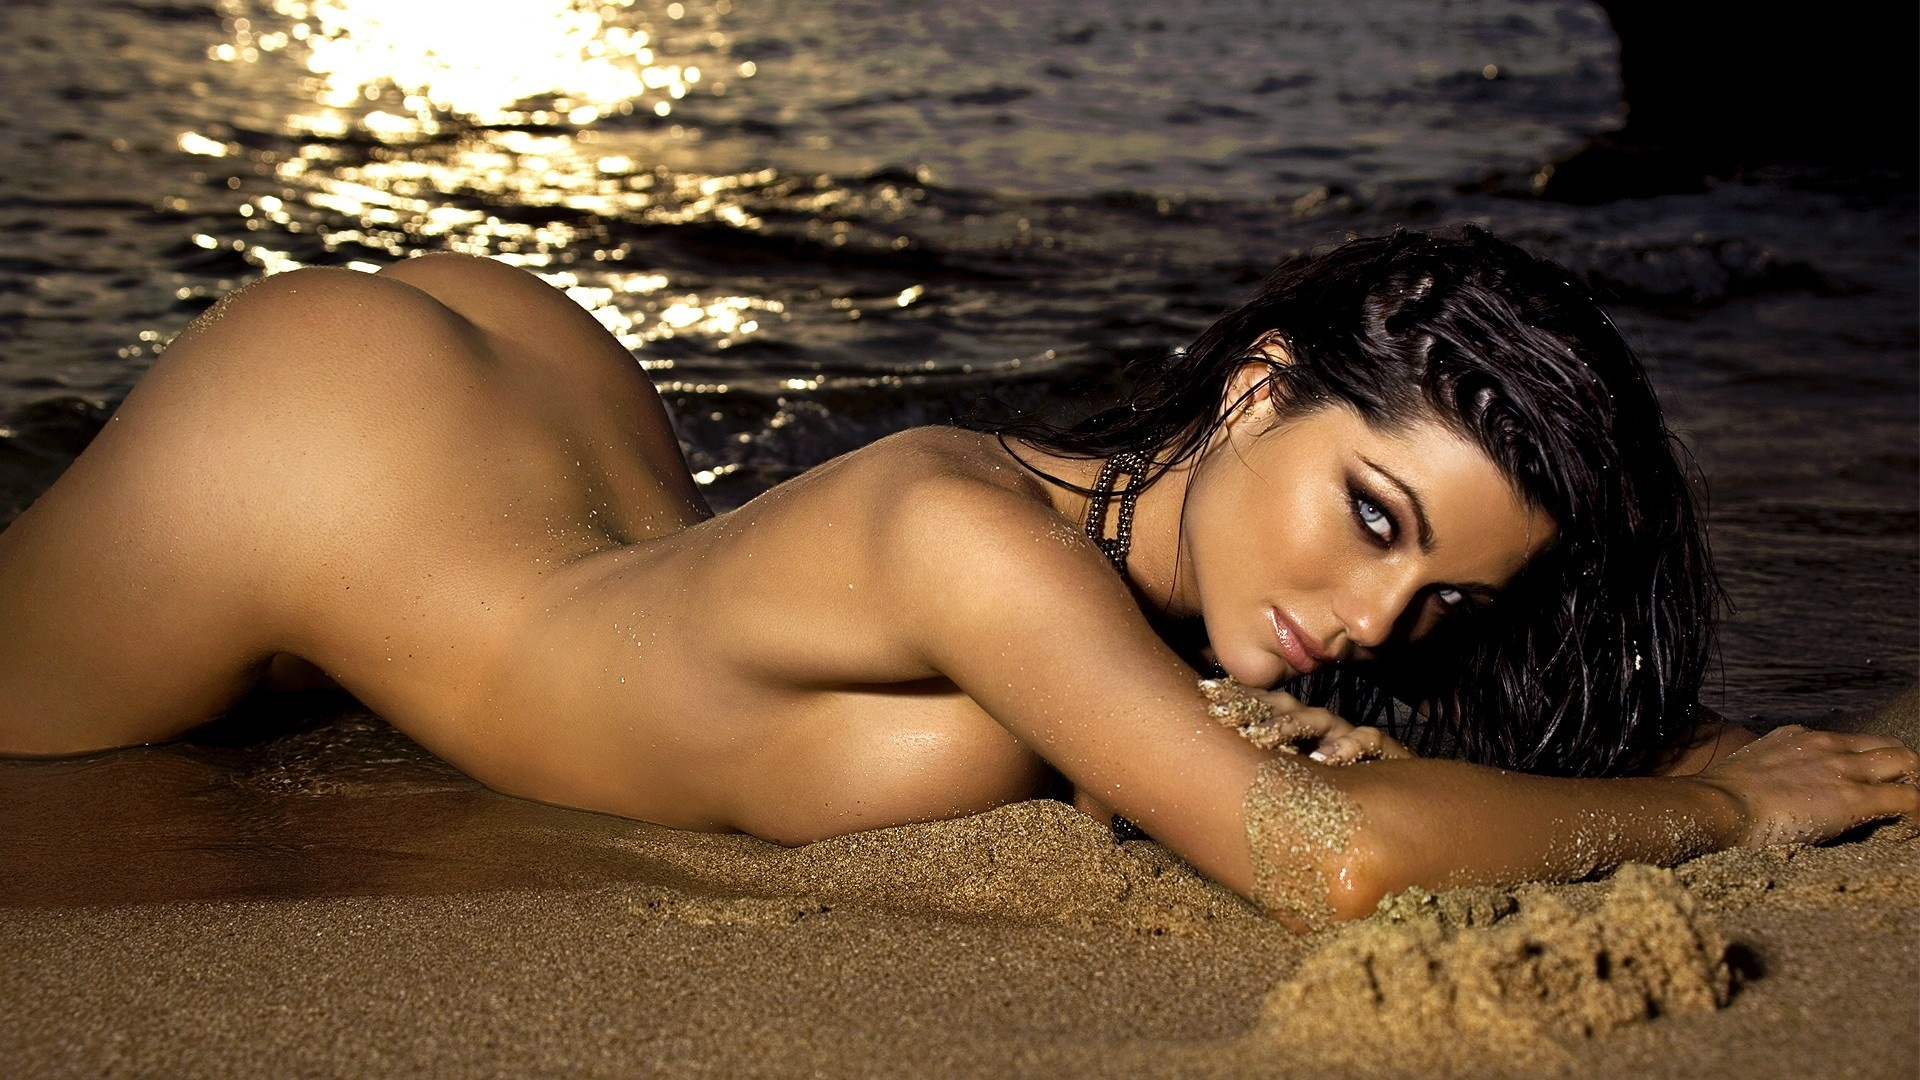 hottest girl in the world nude